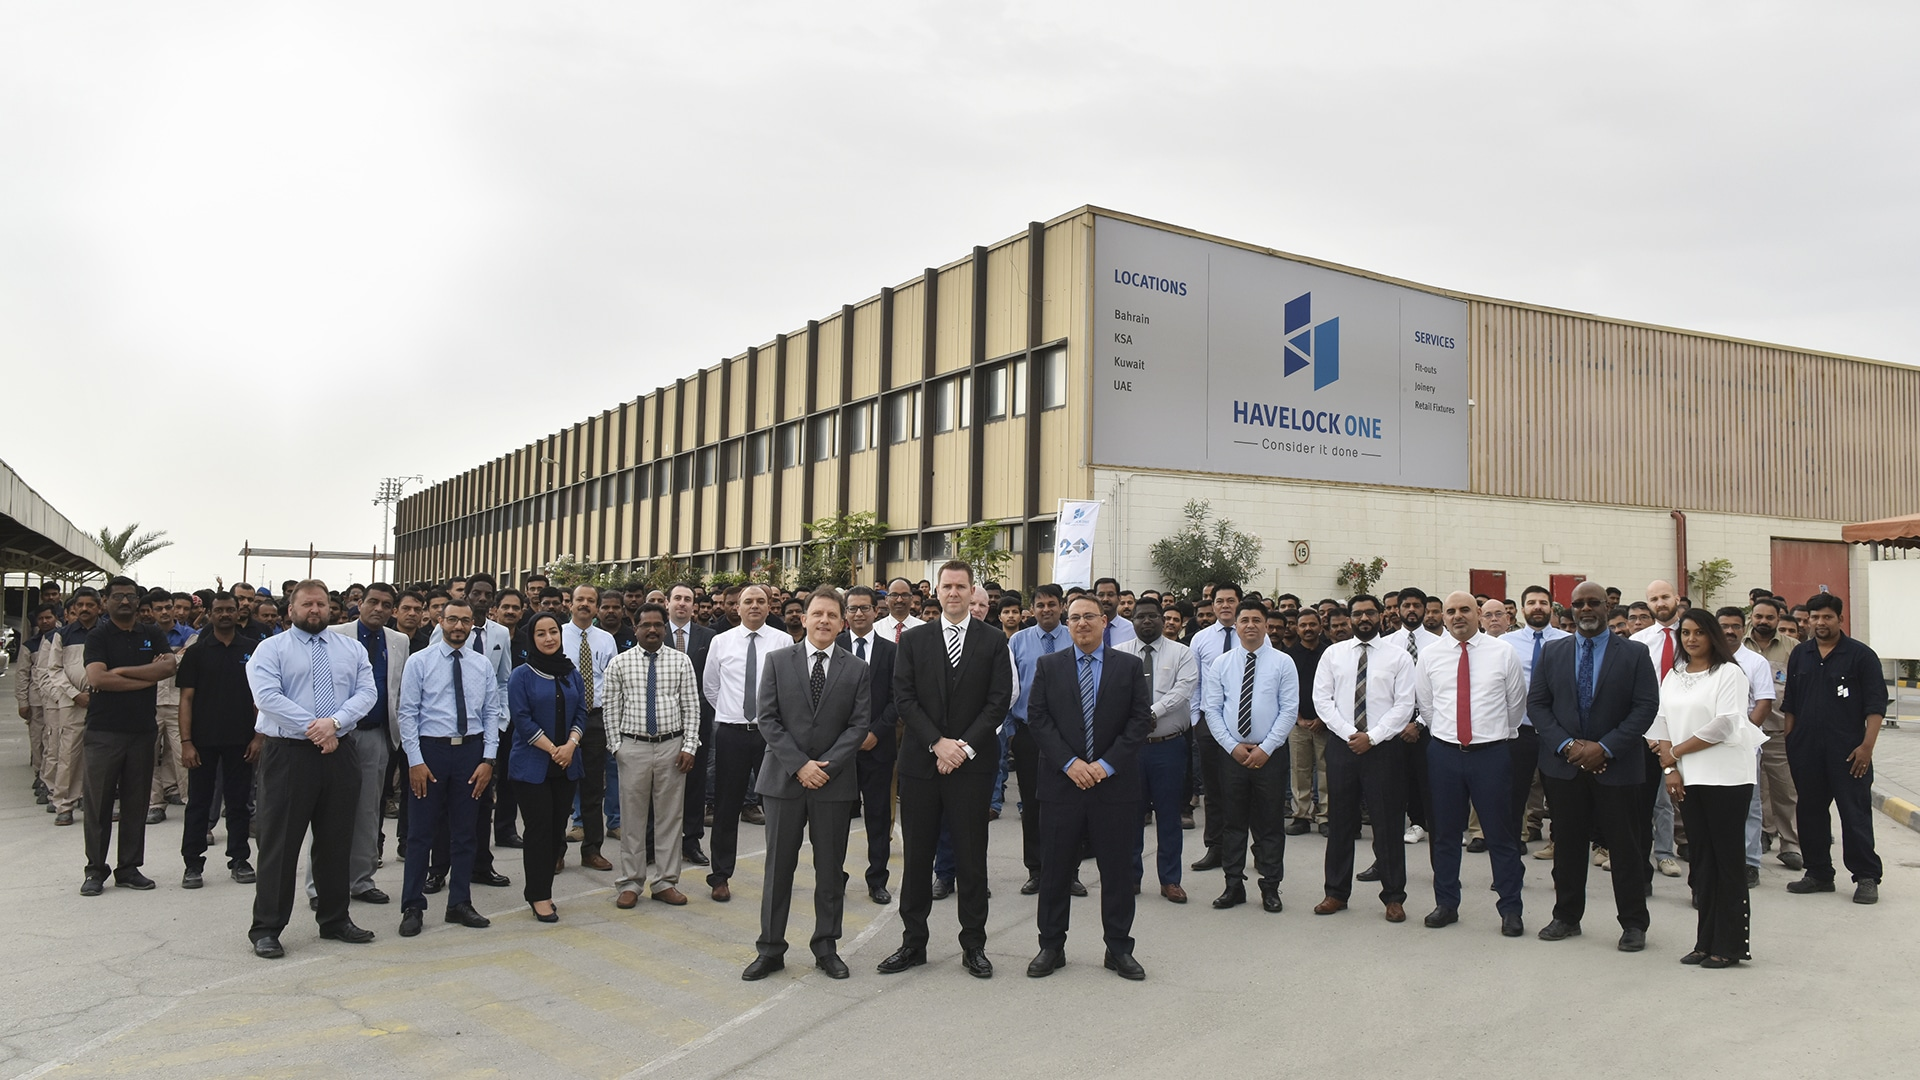 Havelock One operations hub in Askar, Bahrain